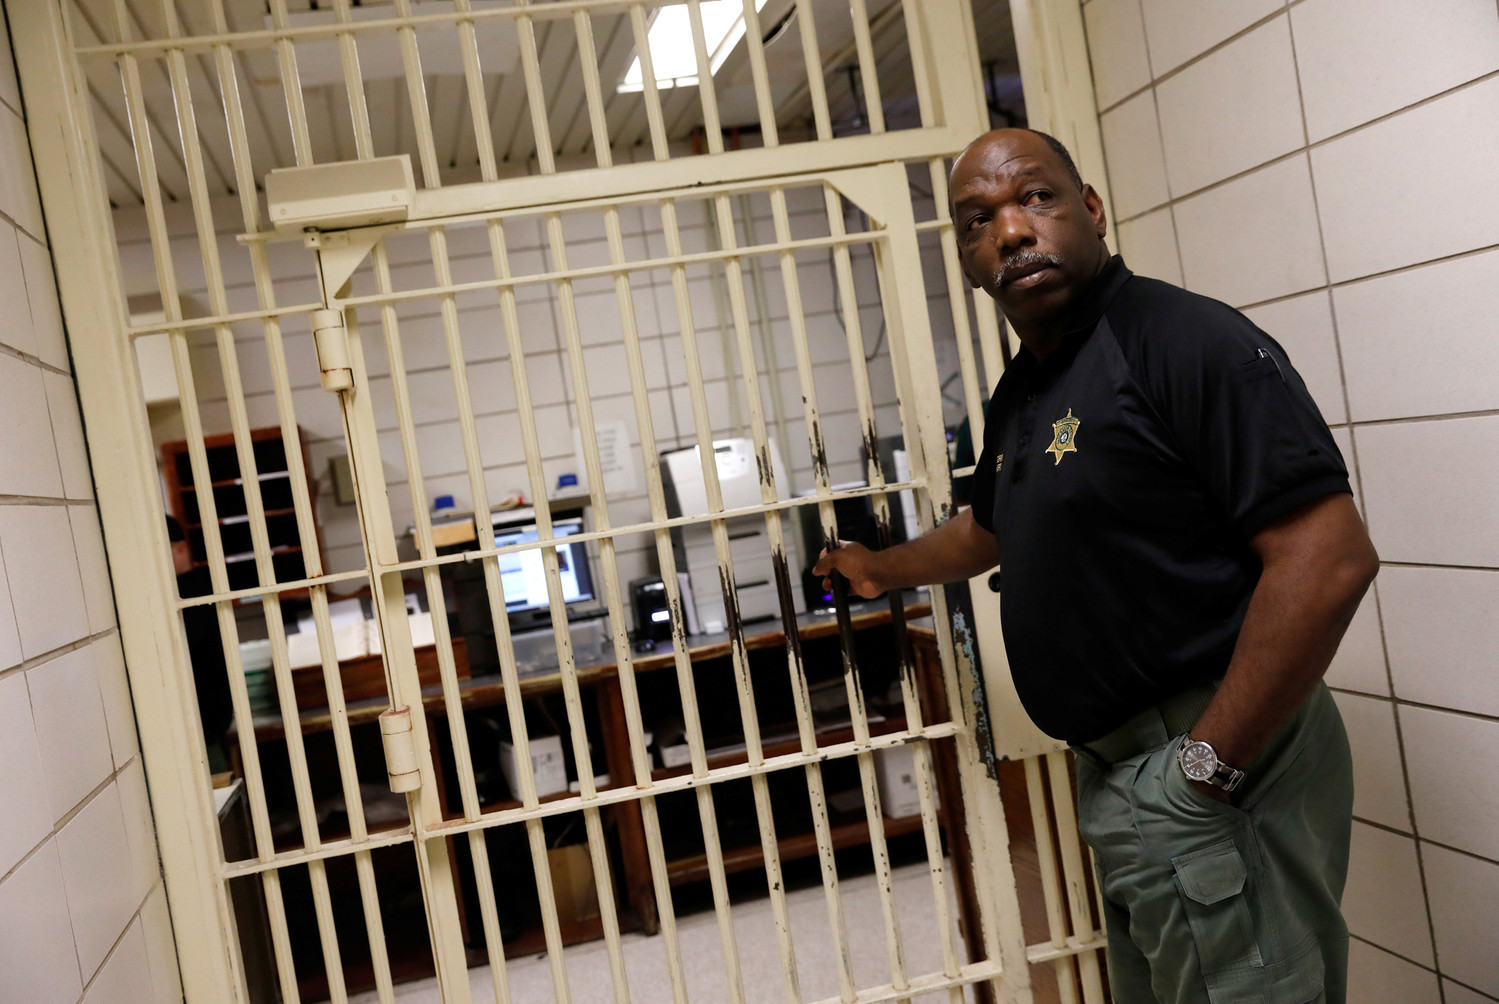 Warden Dennis Grimes opens the doors to holding cells in the East Baton Rouge Parish Prison in Baton Rouge, Louisiana, last March. The federal government could start shaving the size of its prison populations now that the First Step Act become has become law.